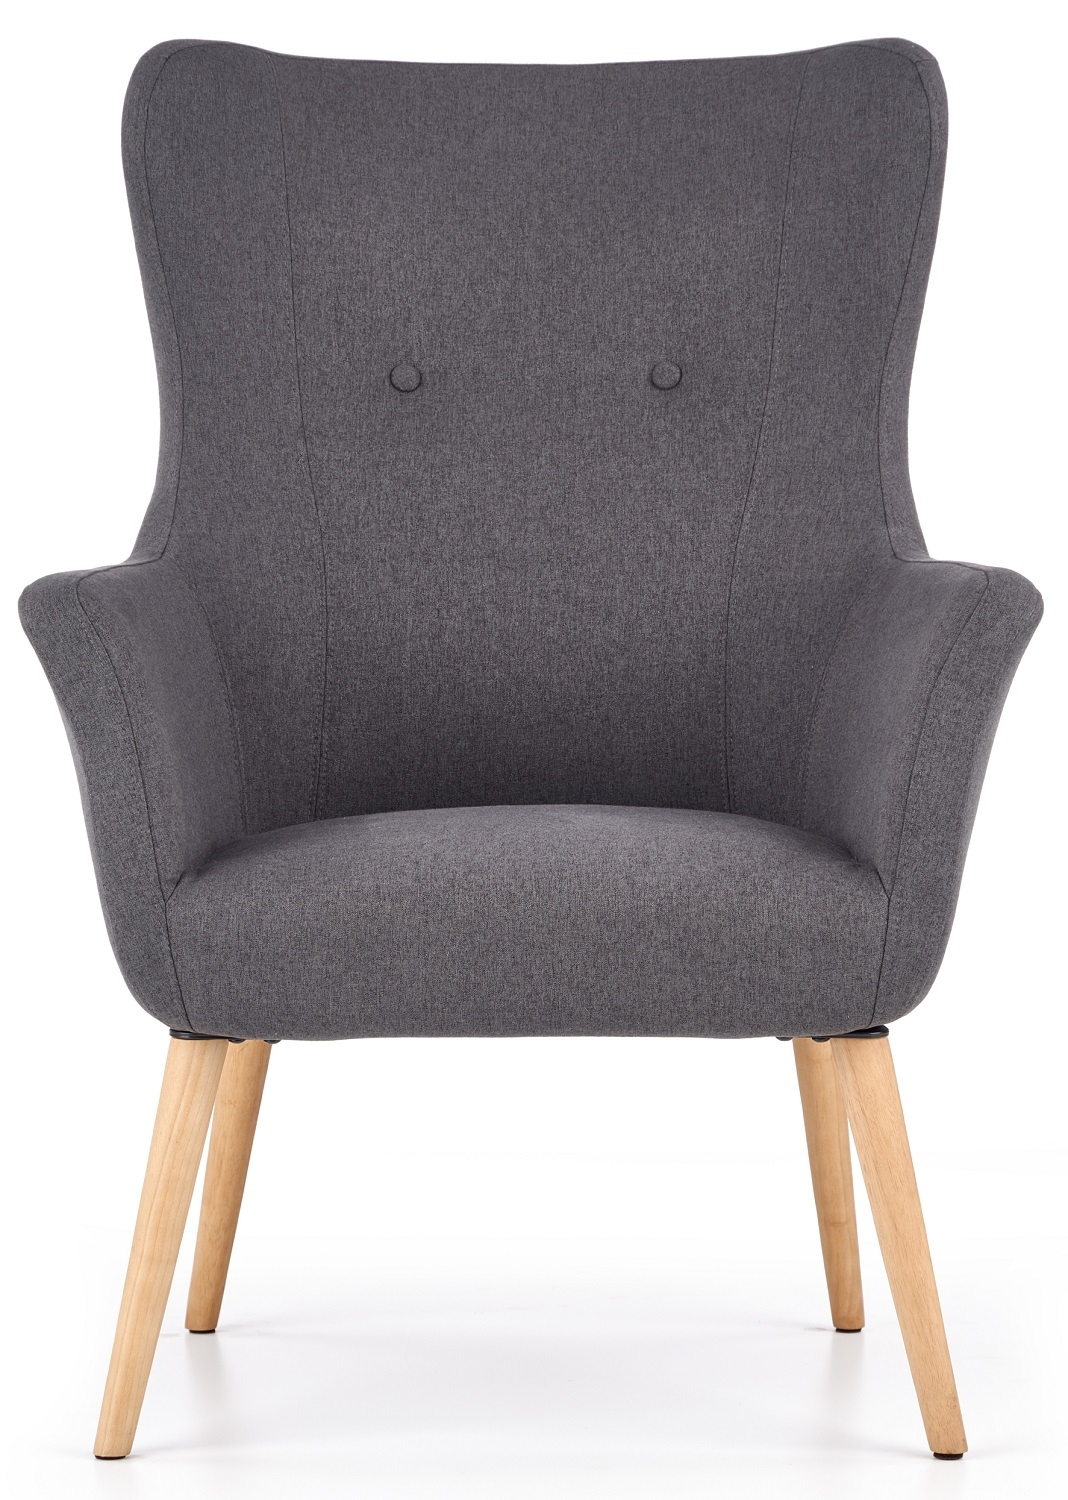 Fauteuil Cotto in donkergrijs